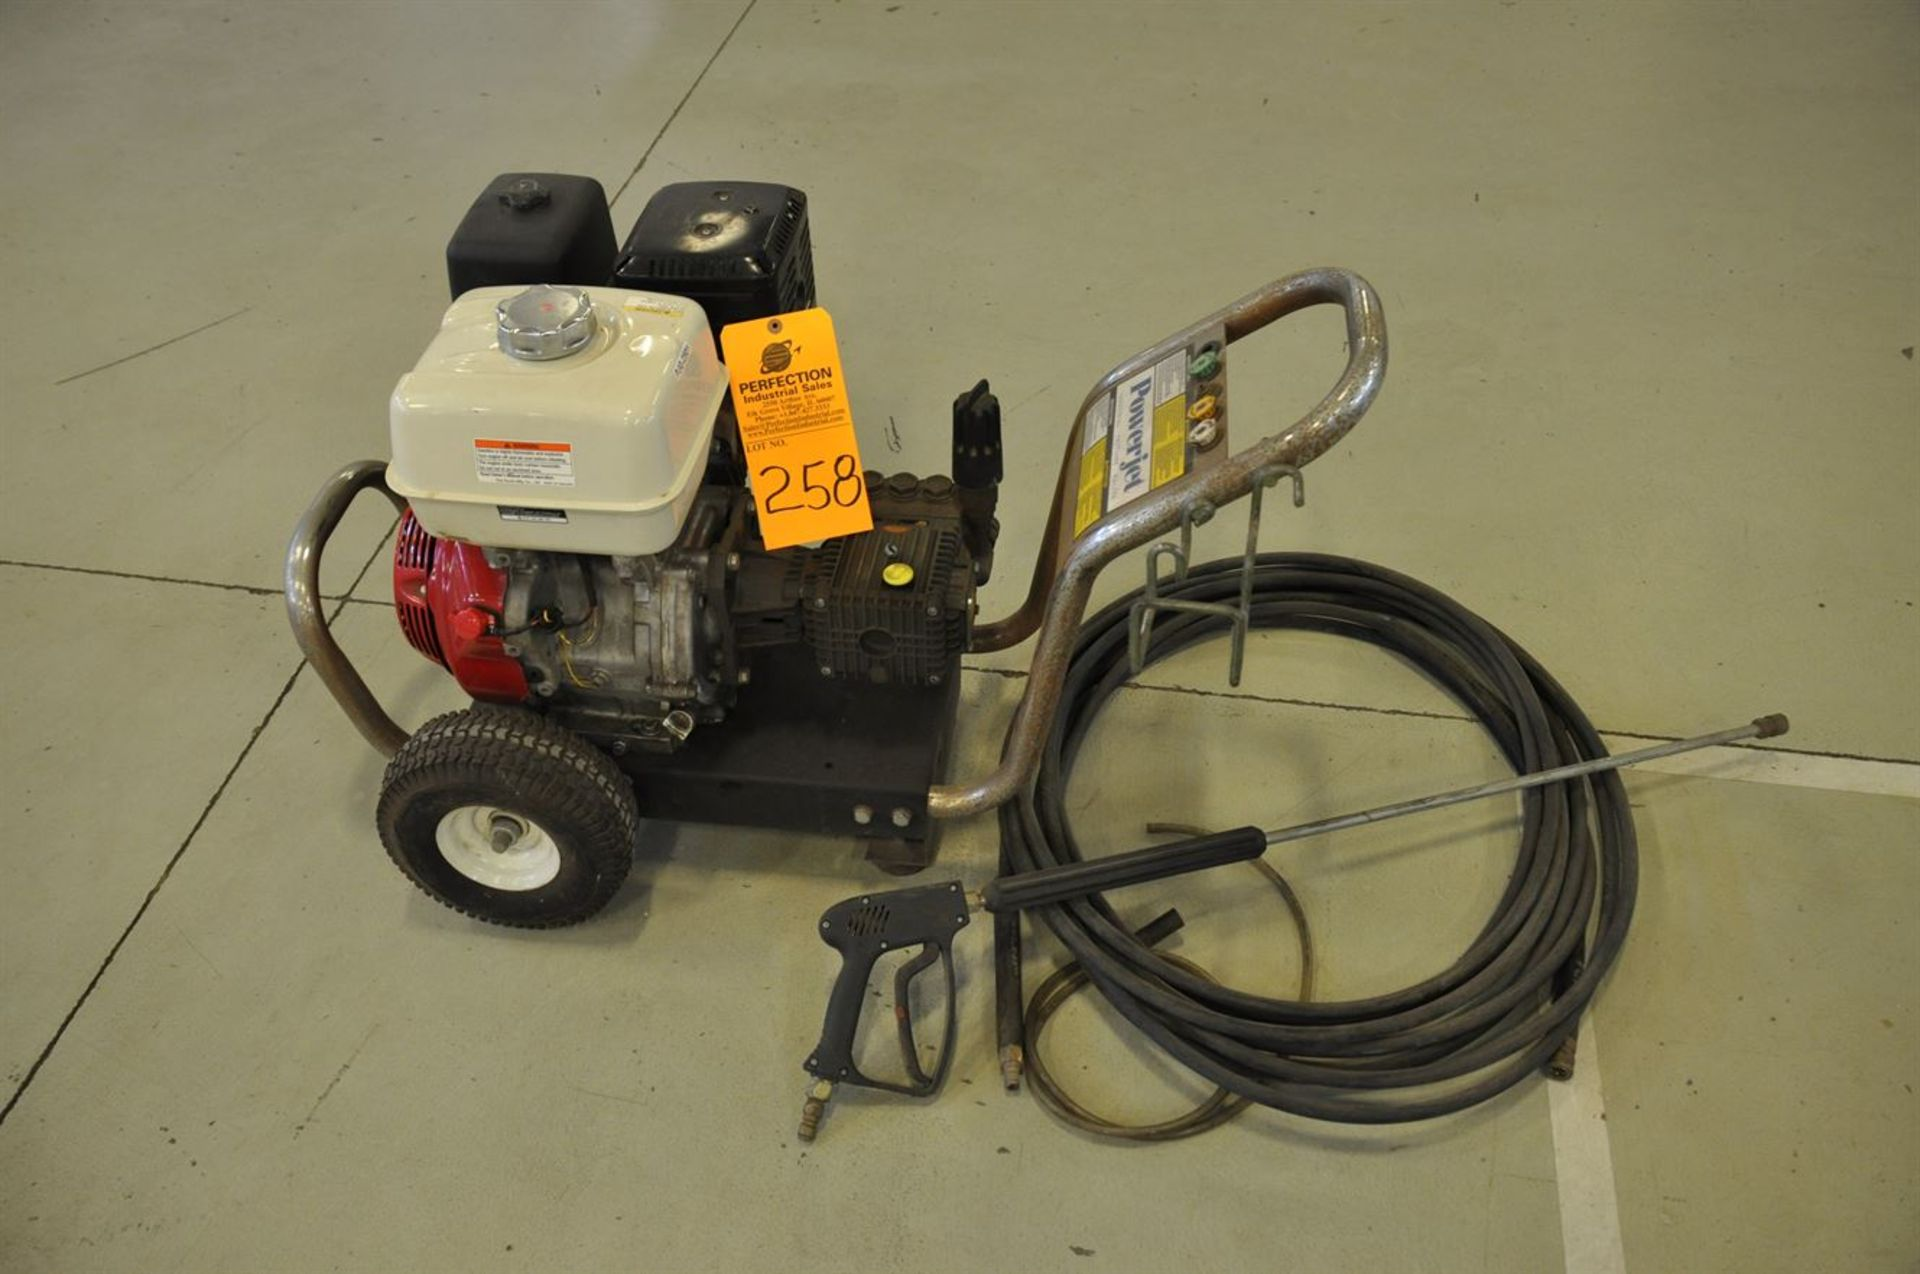 PowerJet/Honda, PJG-2501, Industrial Pressure washer